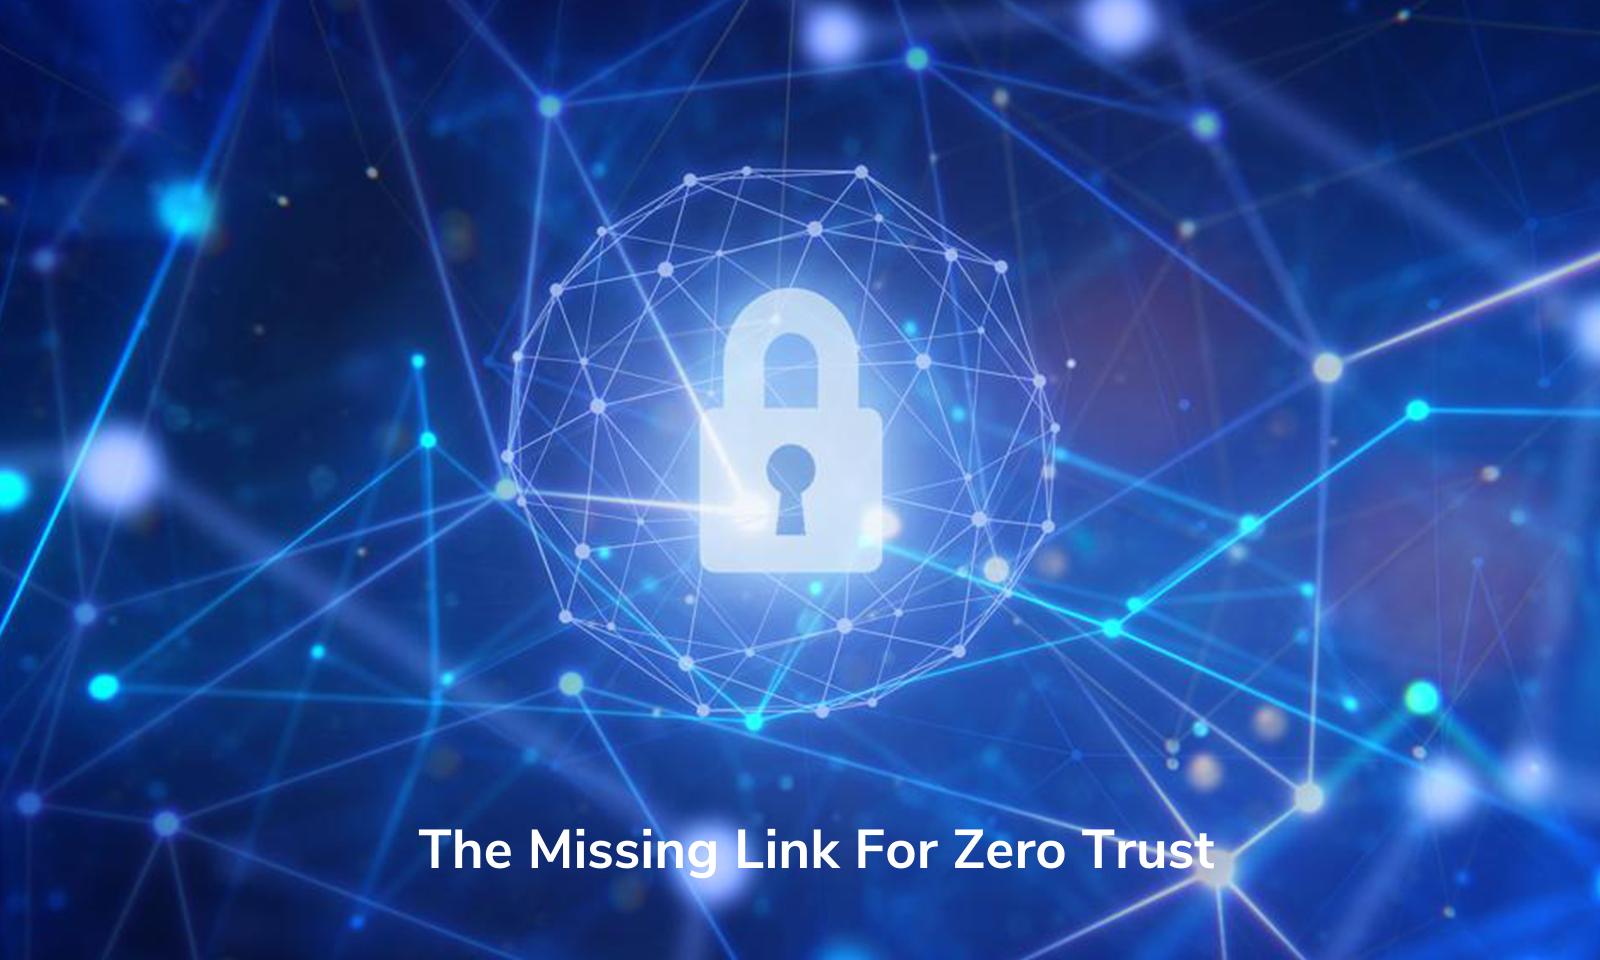 The Missing Link For Zero Trust